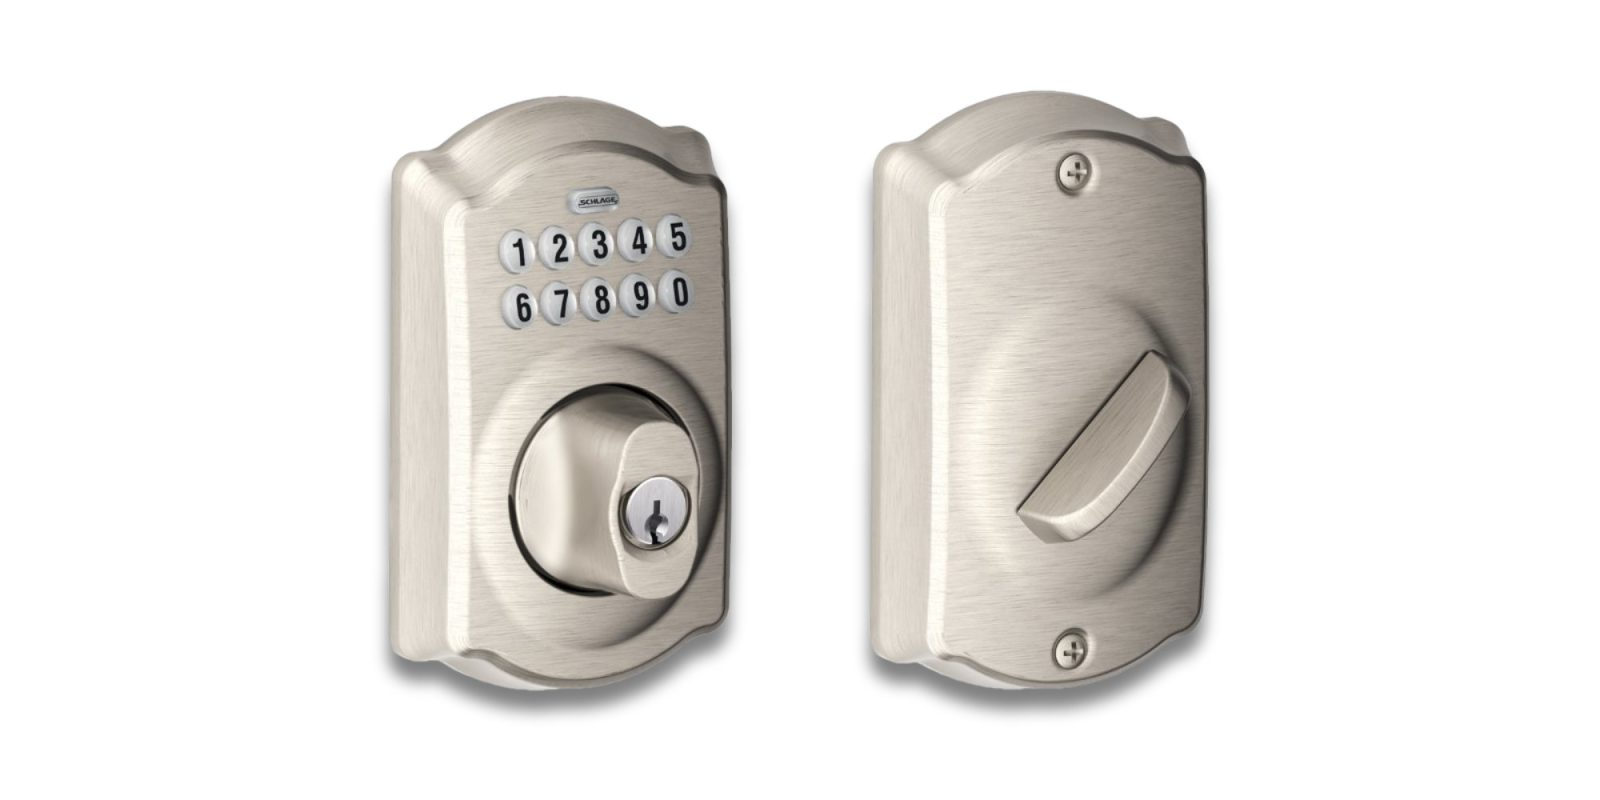 Schlage's Keypad Deadbolt falls to lowest Amazon price in over a year, now $75